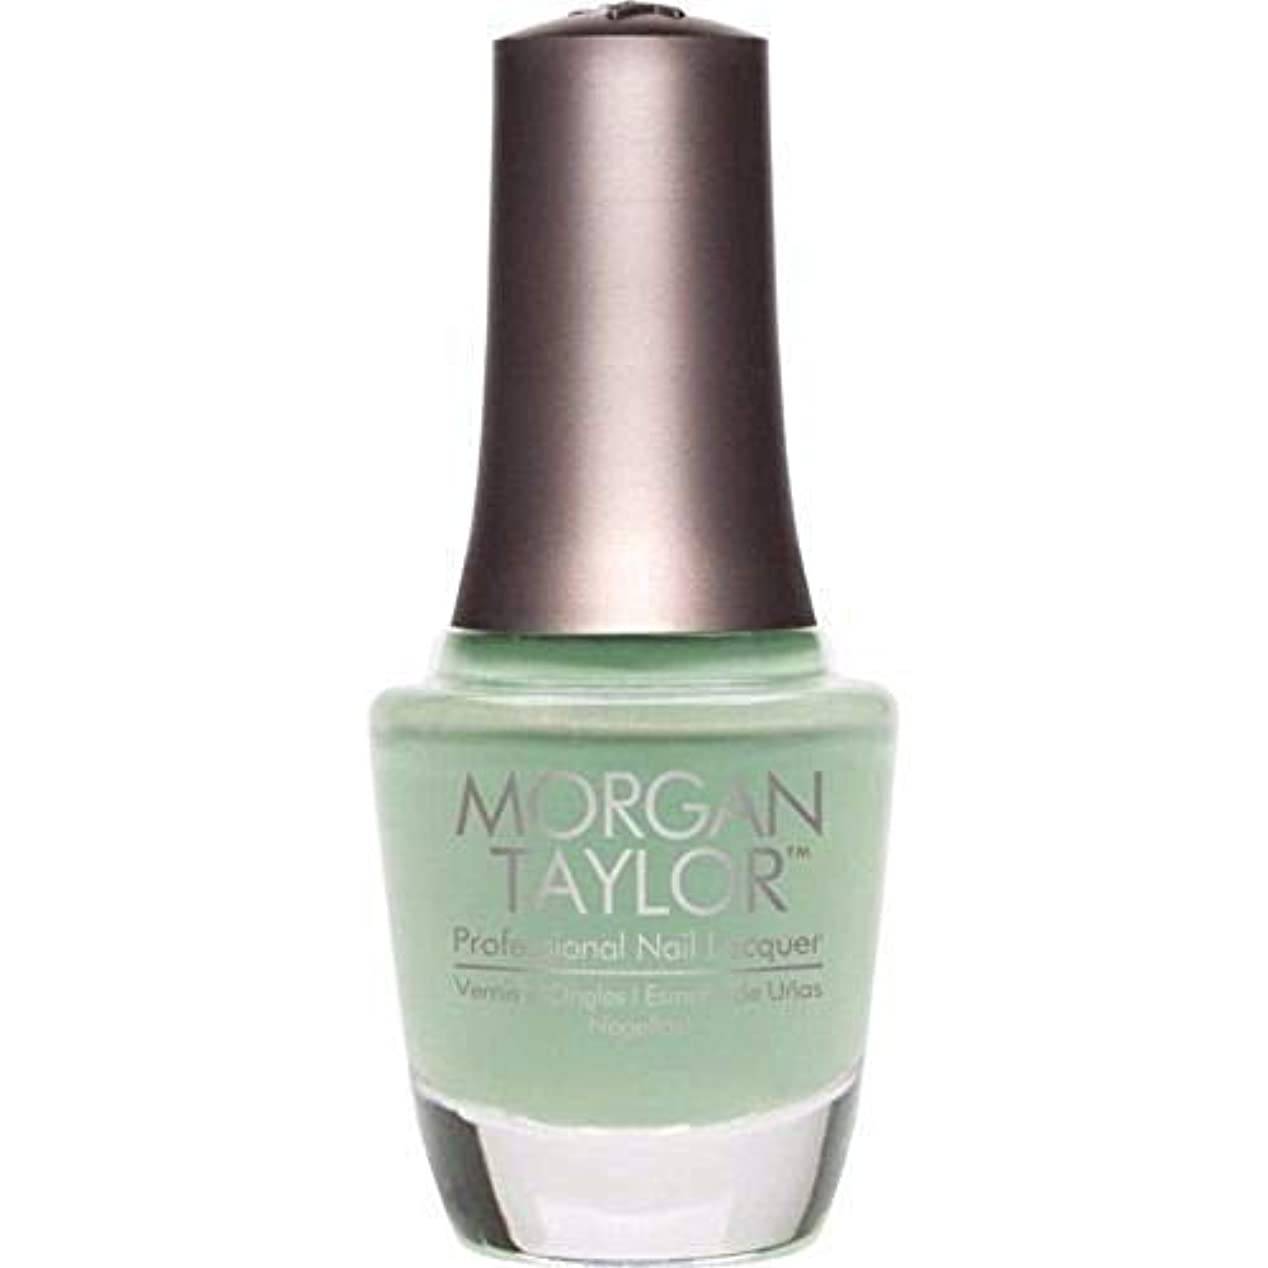 Morgan Taylor - Professional Nail Lacquer - Do You Harajuku? - 15 mL / 0.5oz